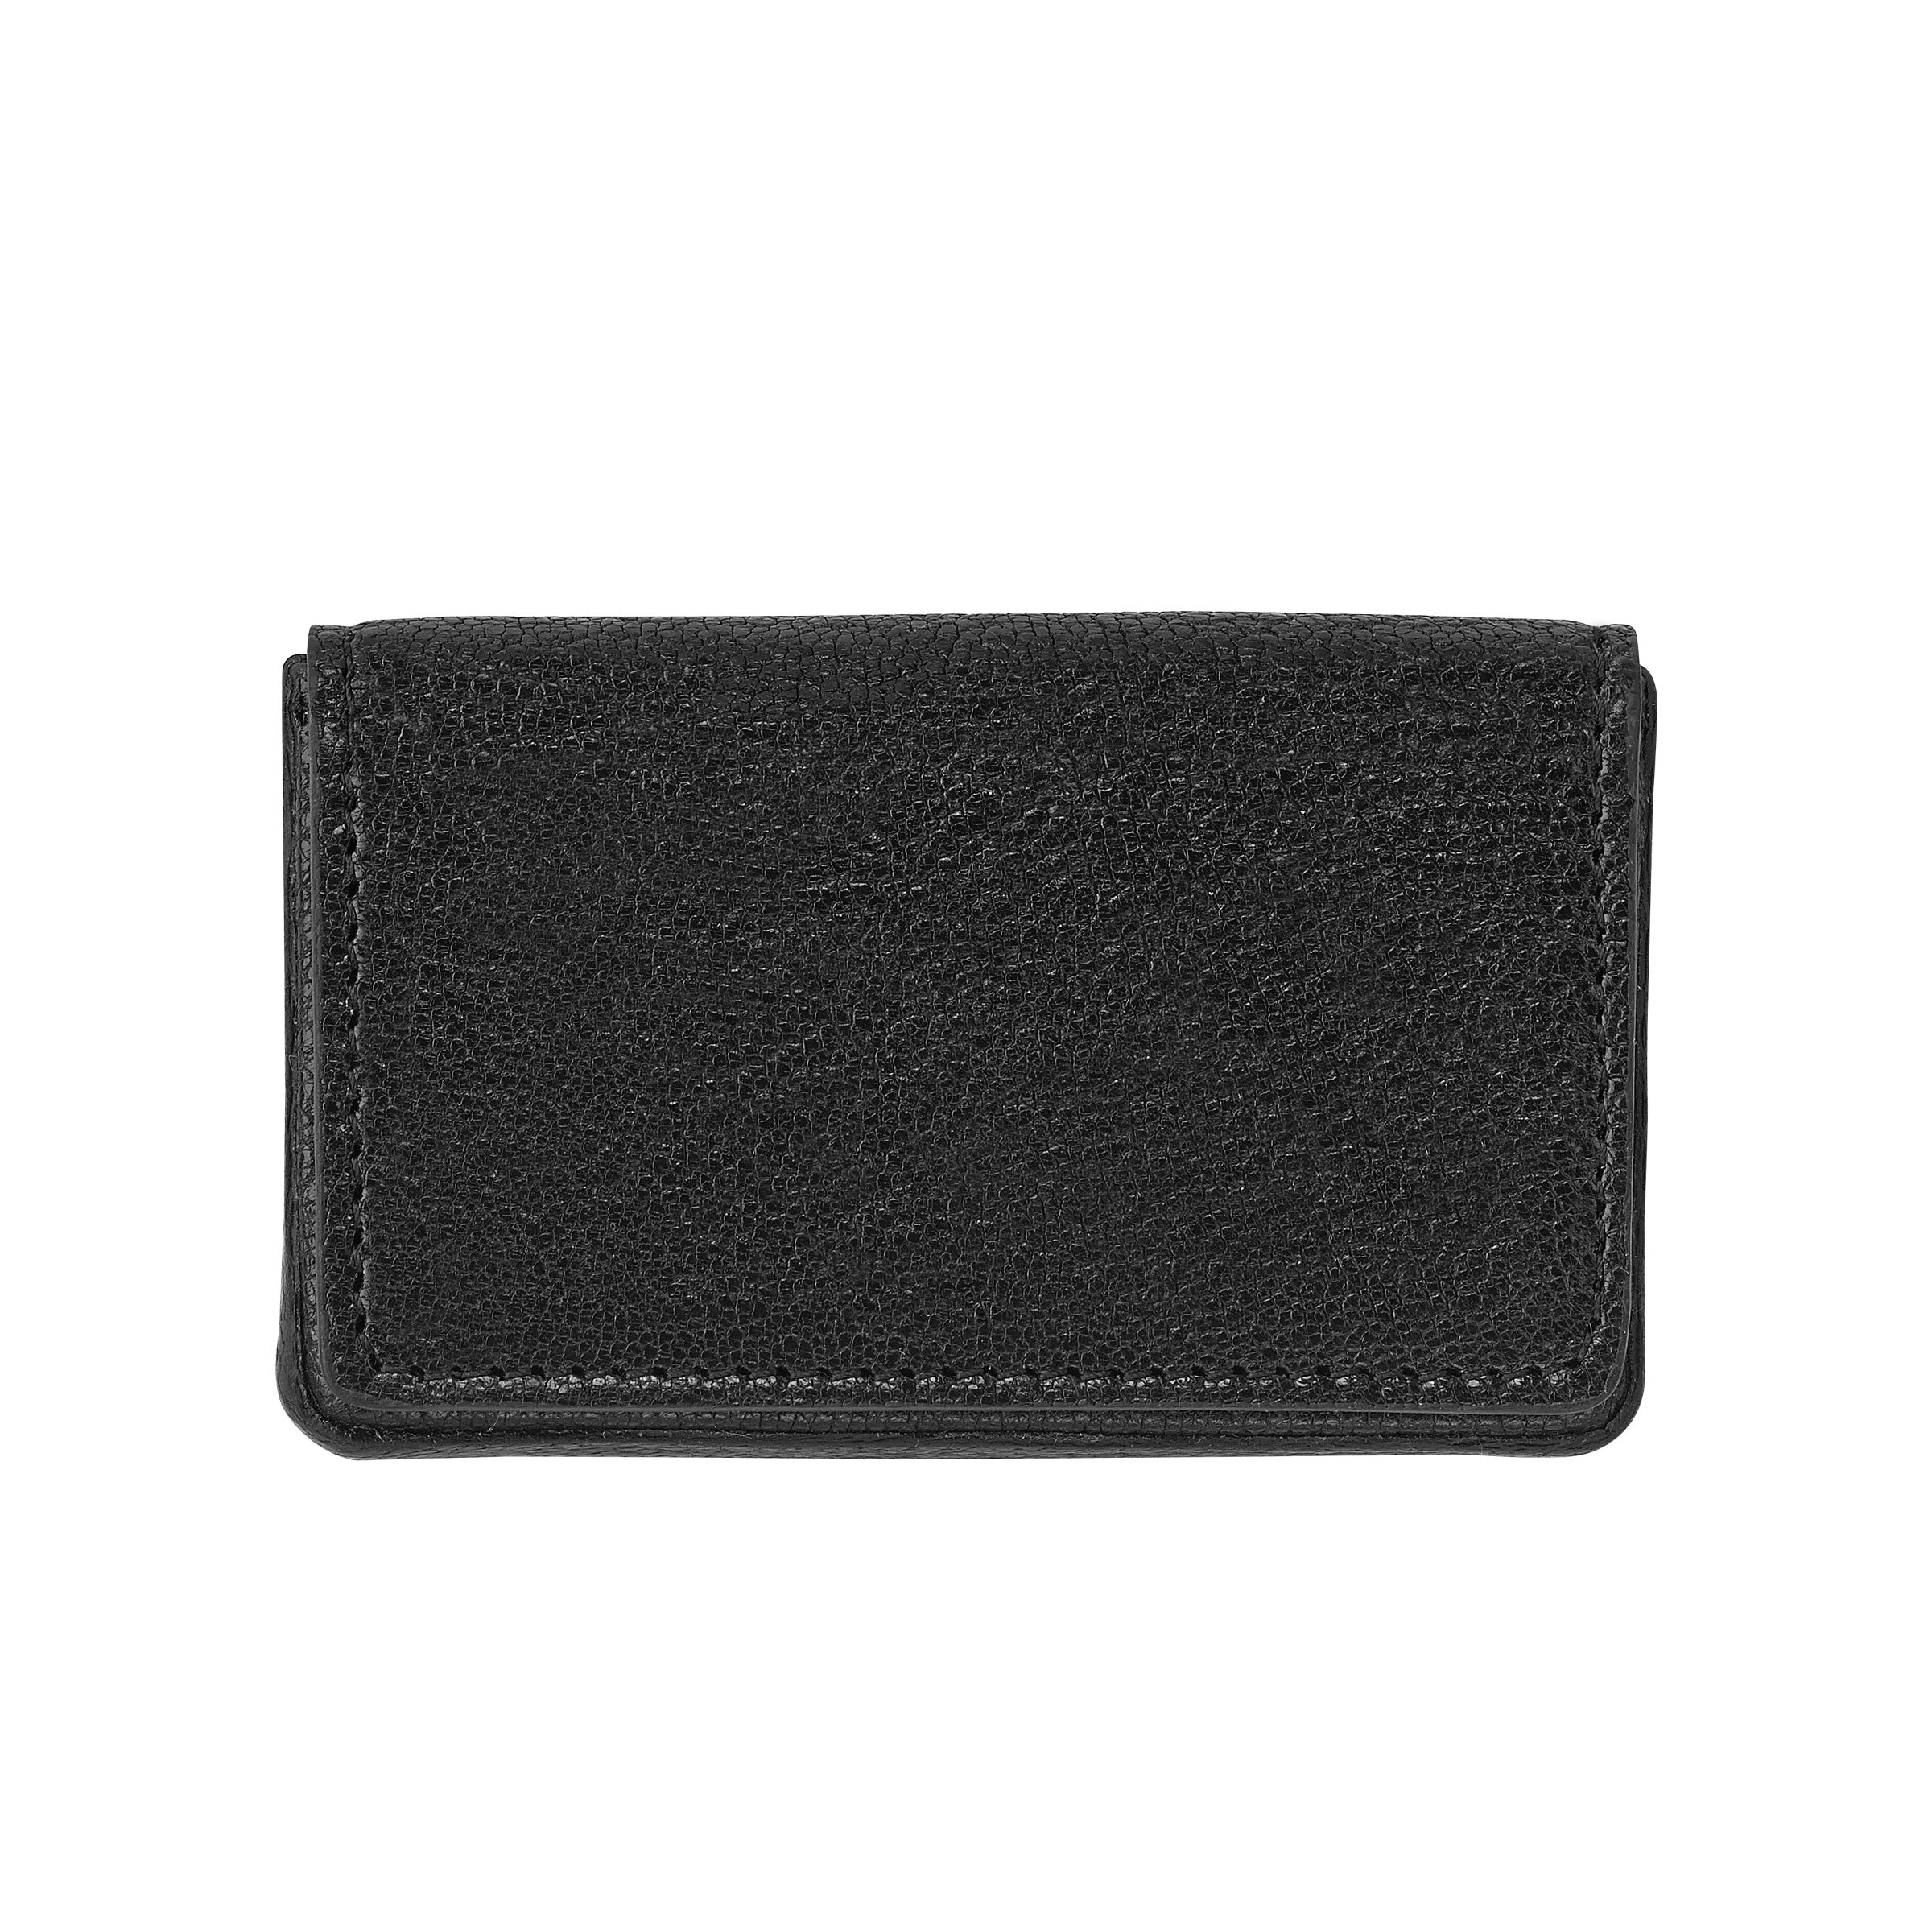 Hard Cover Business Card Case, Black Leather